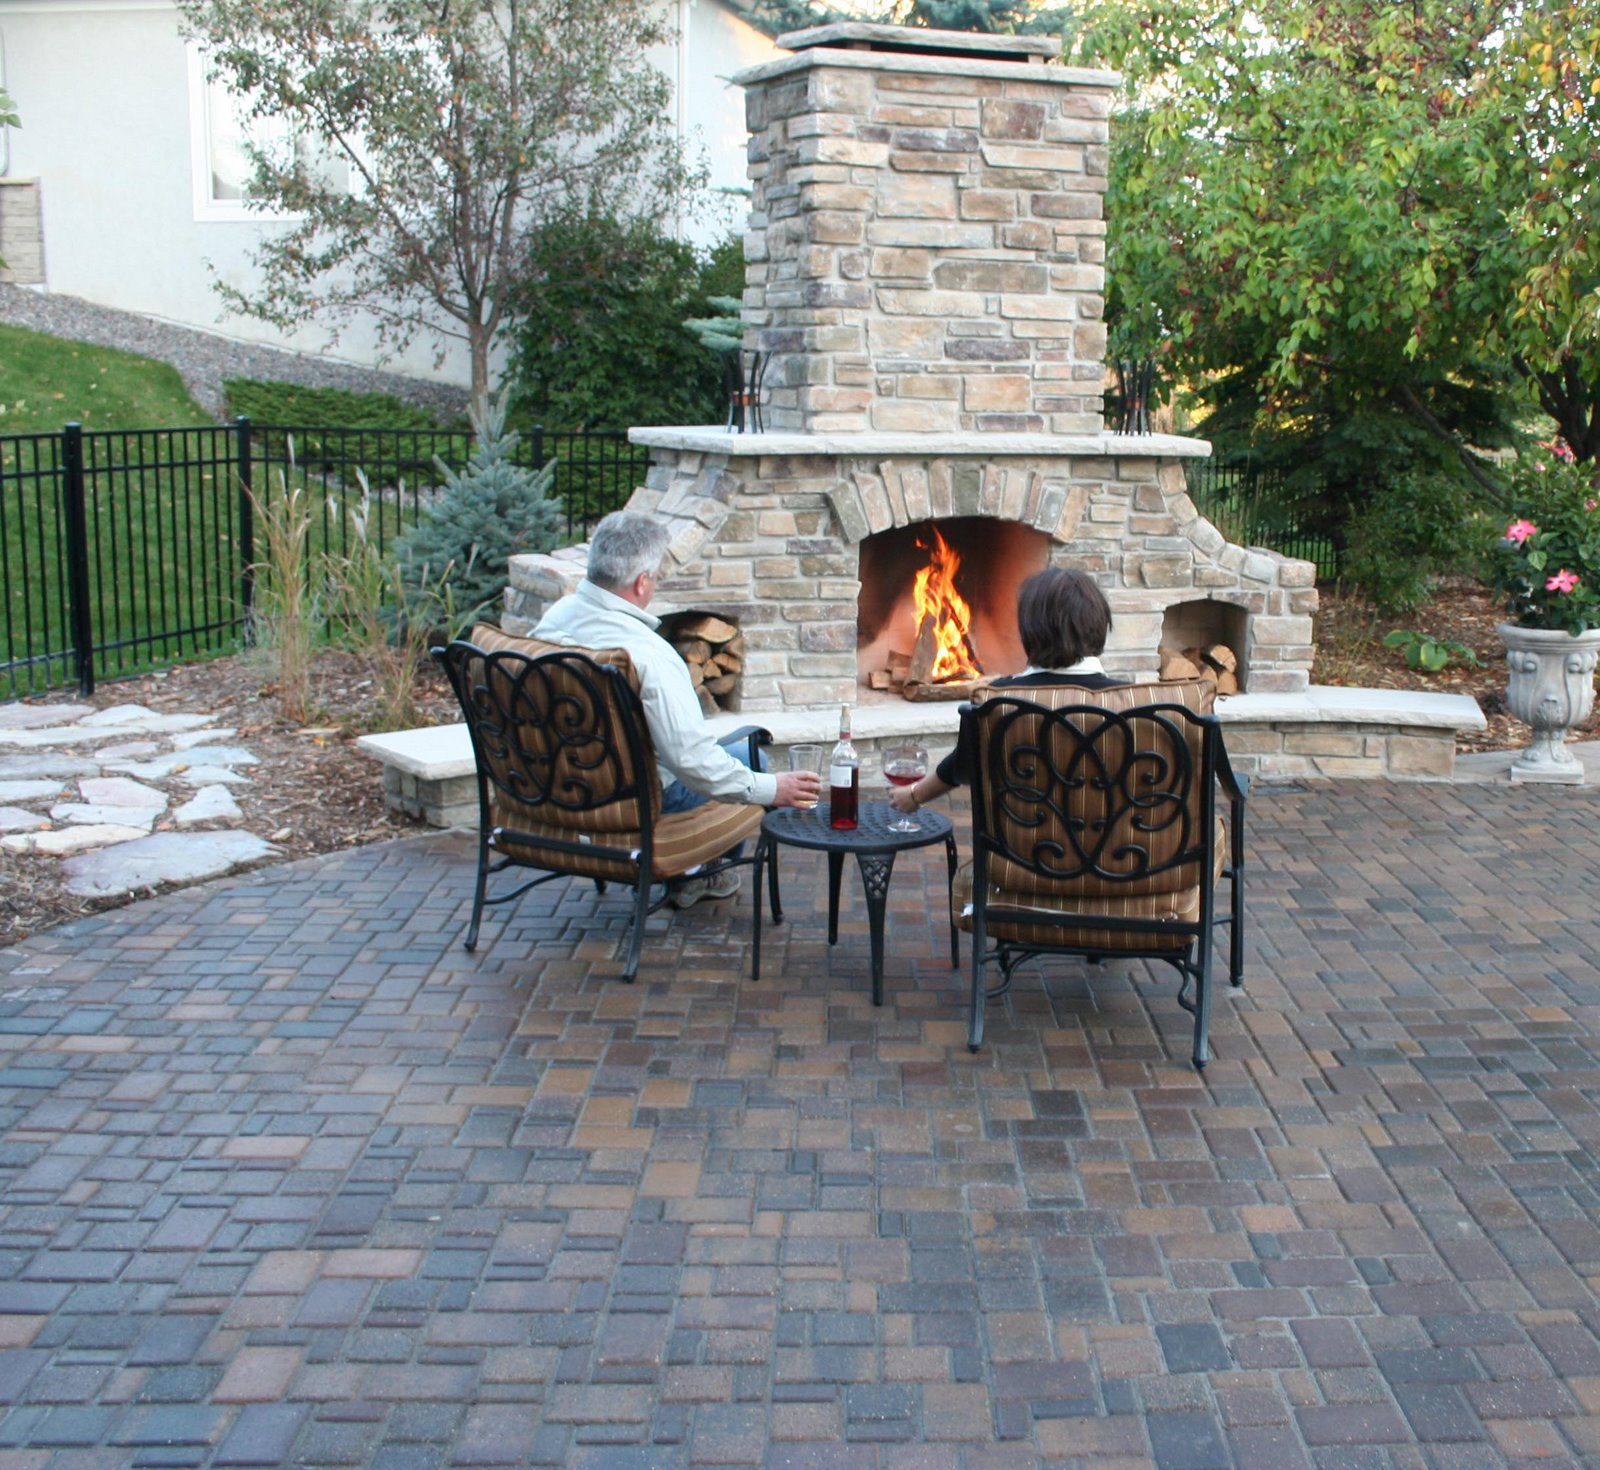 How to Make a Brick Fire Pit in your Backyard